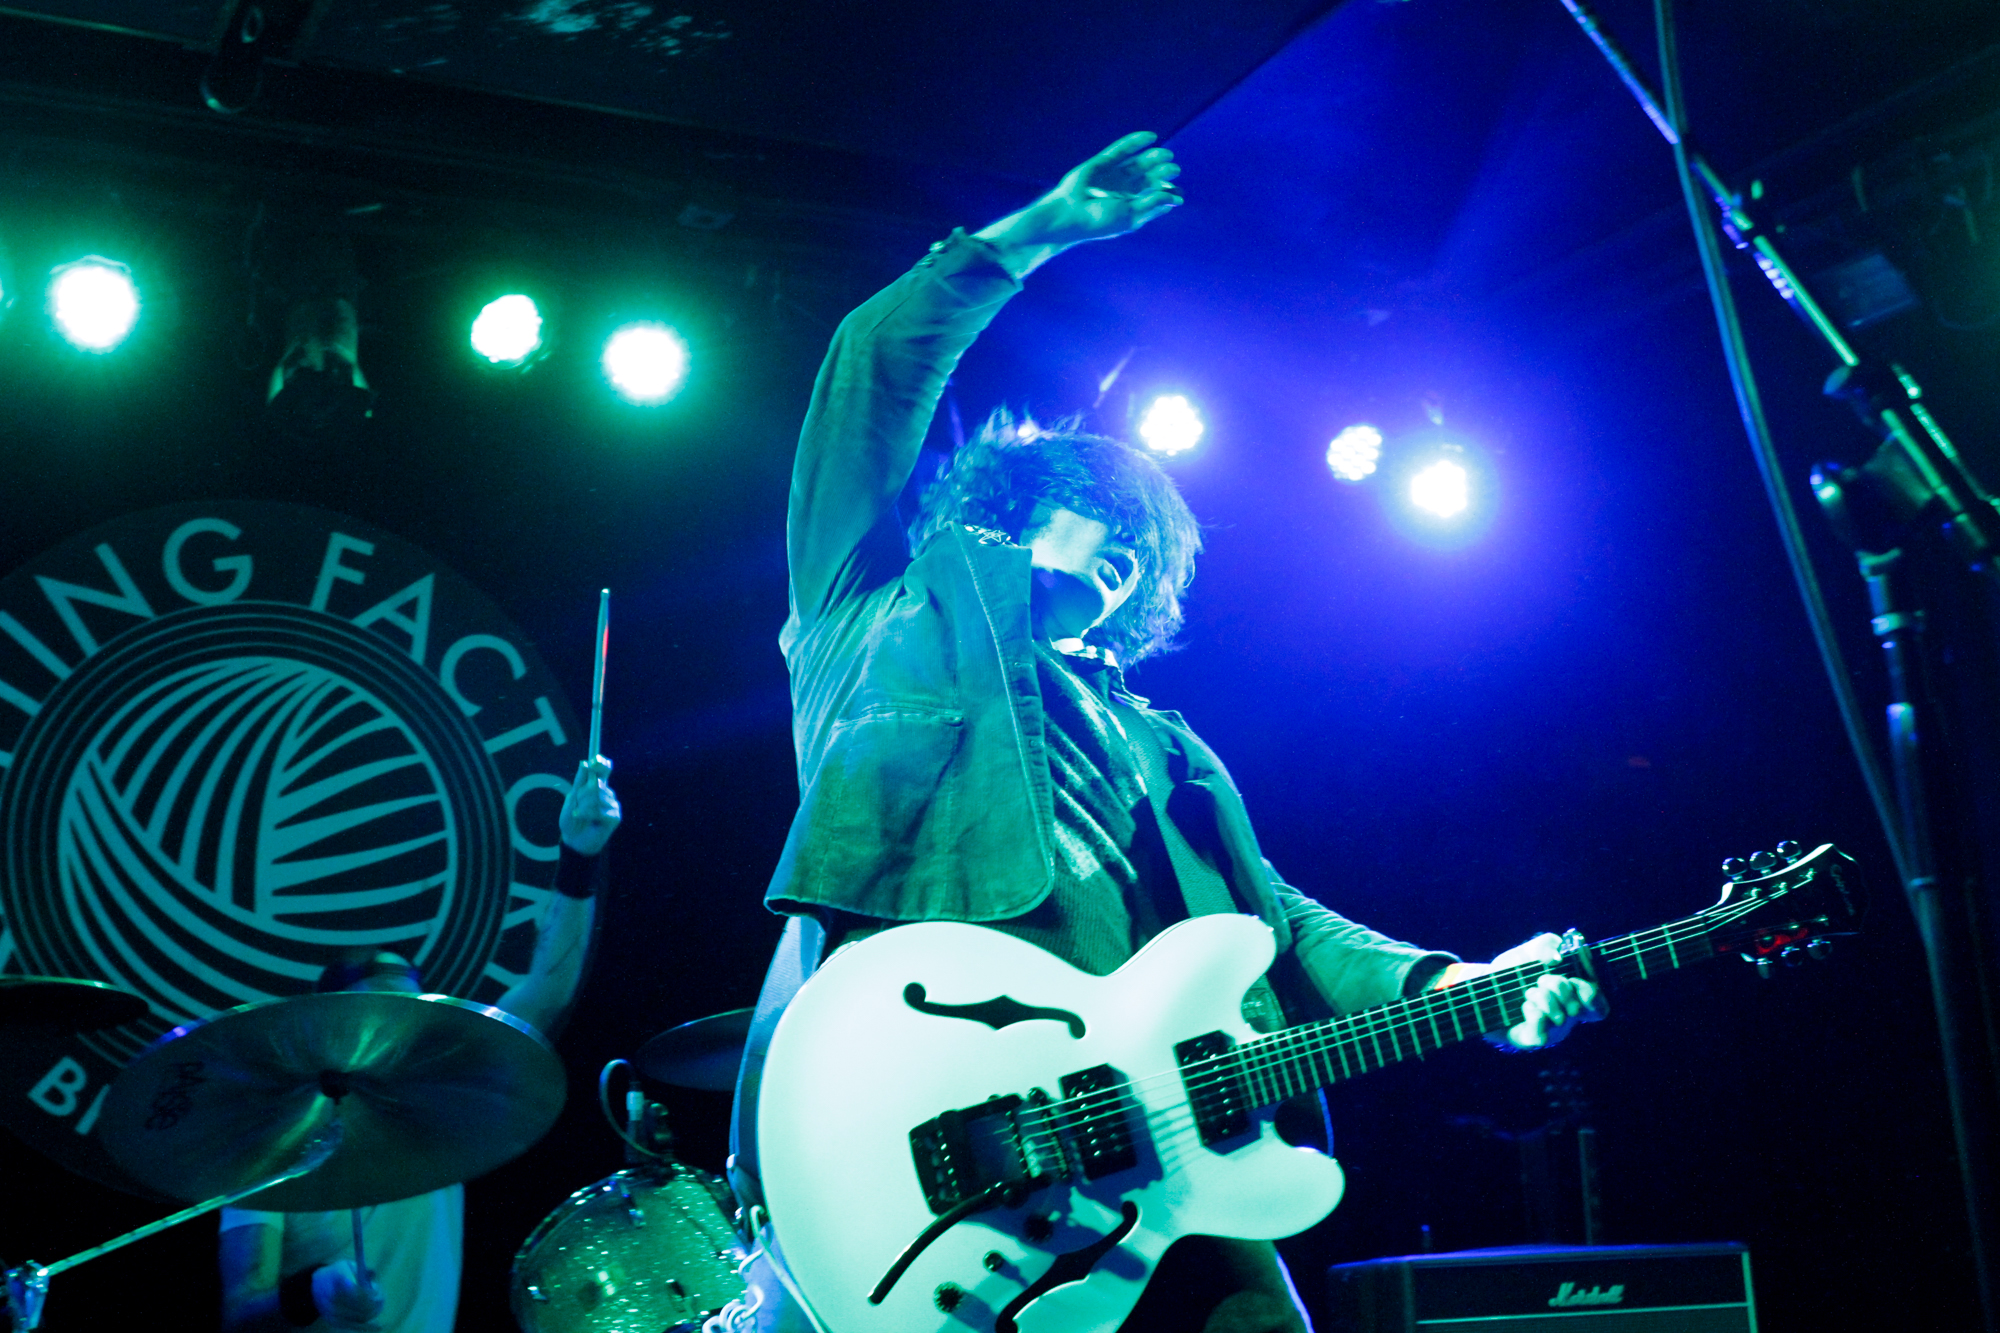 Beach Slang plays at Knitting Factory in Brooklyn, NY on Dec. 17, 2015. (© Michael Katzif - Do not use or republish without prior consent.)